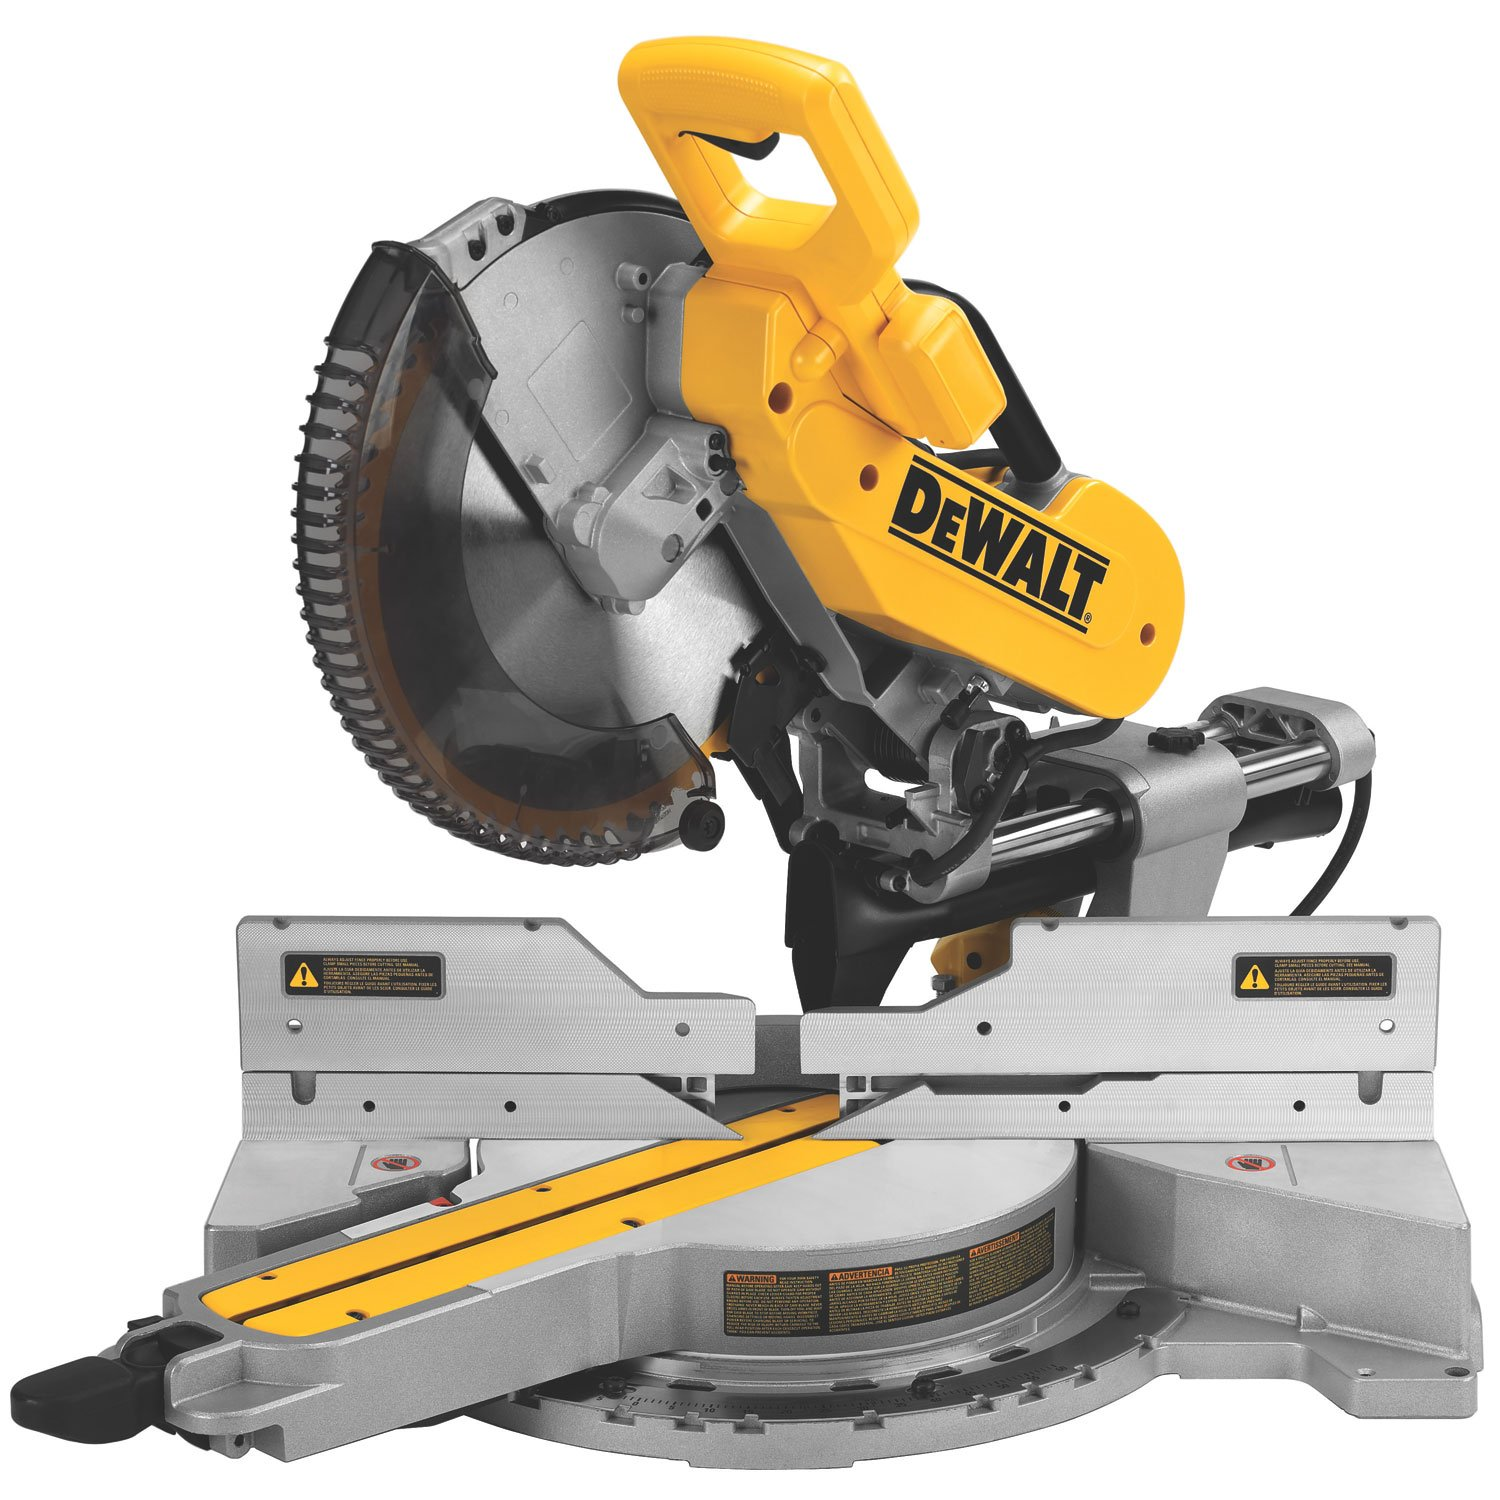 DEWALT DWS780 - 12-Inch Best Sliding Miter Saw